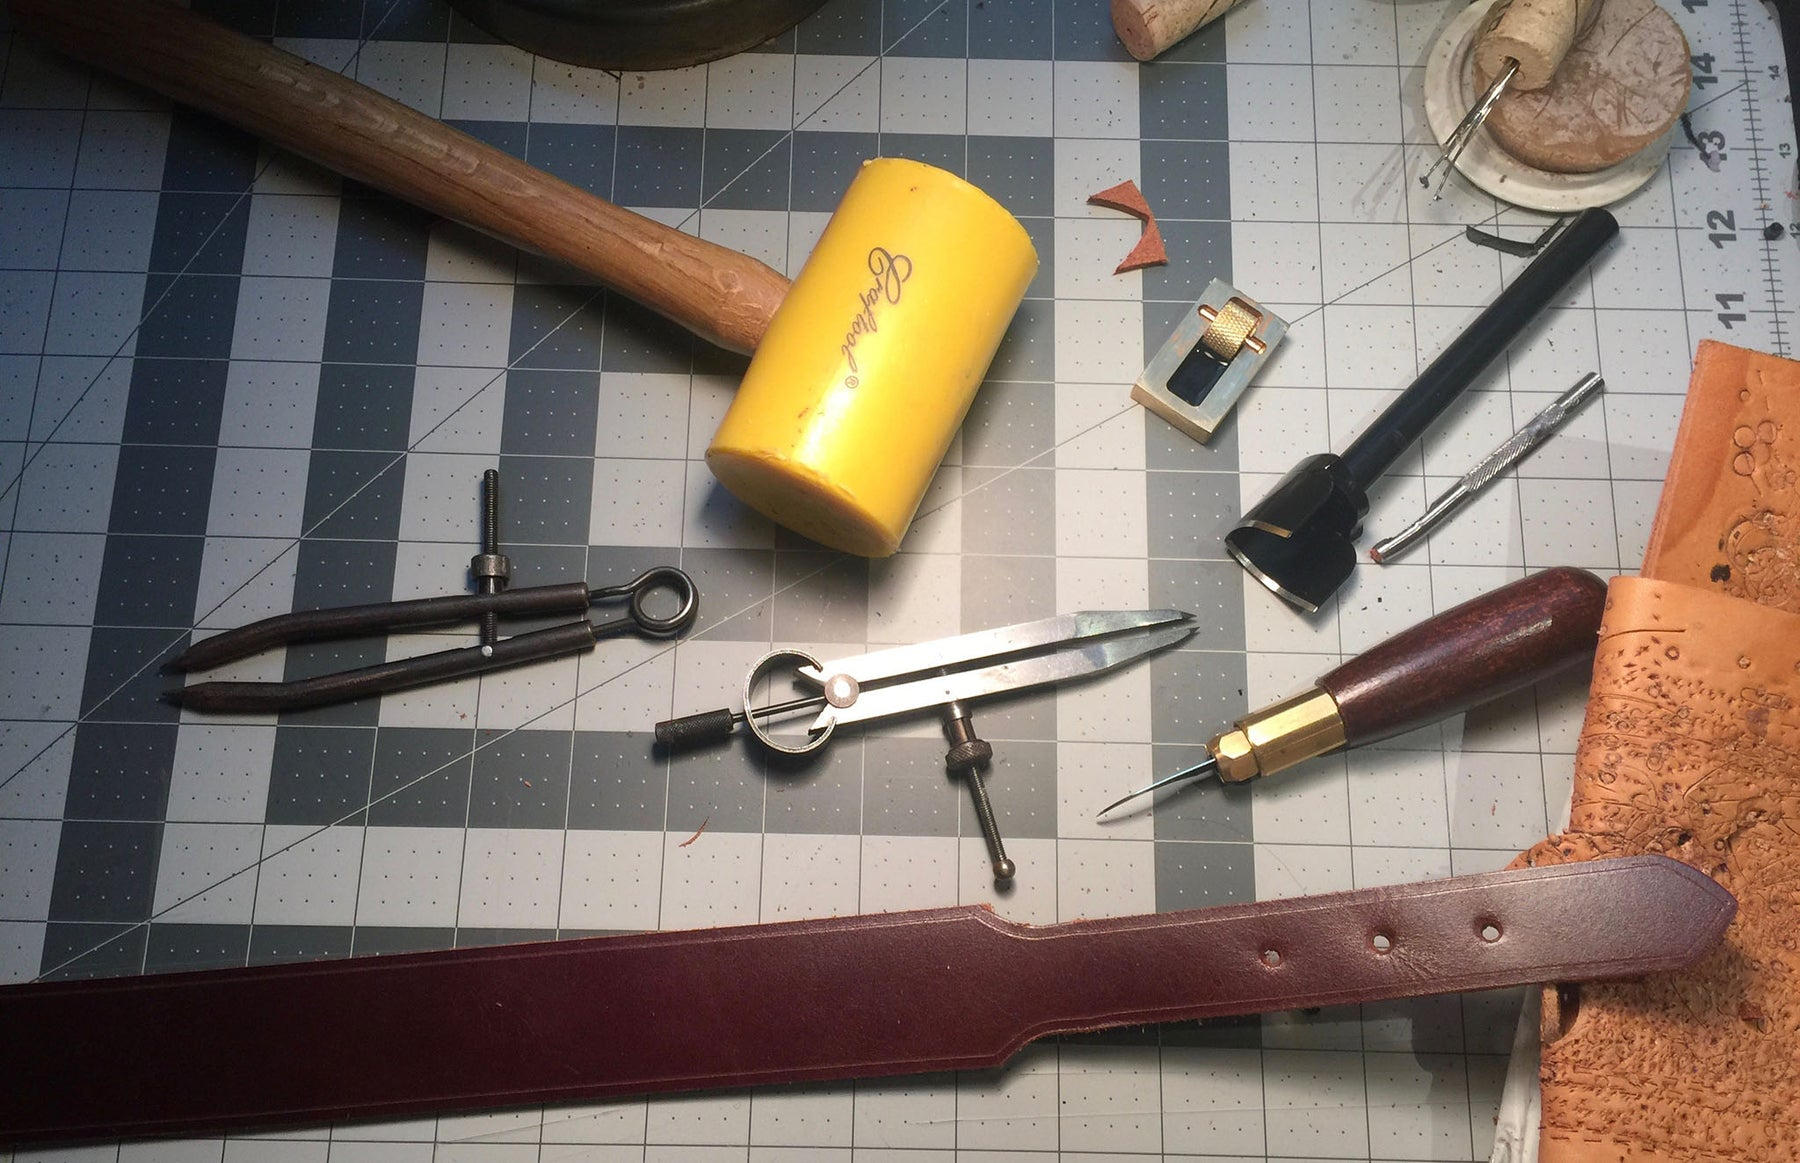 Leather working tools used at Bottega Flaviani  to make each handmade leather handbags and accessory in San Francisco